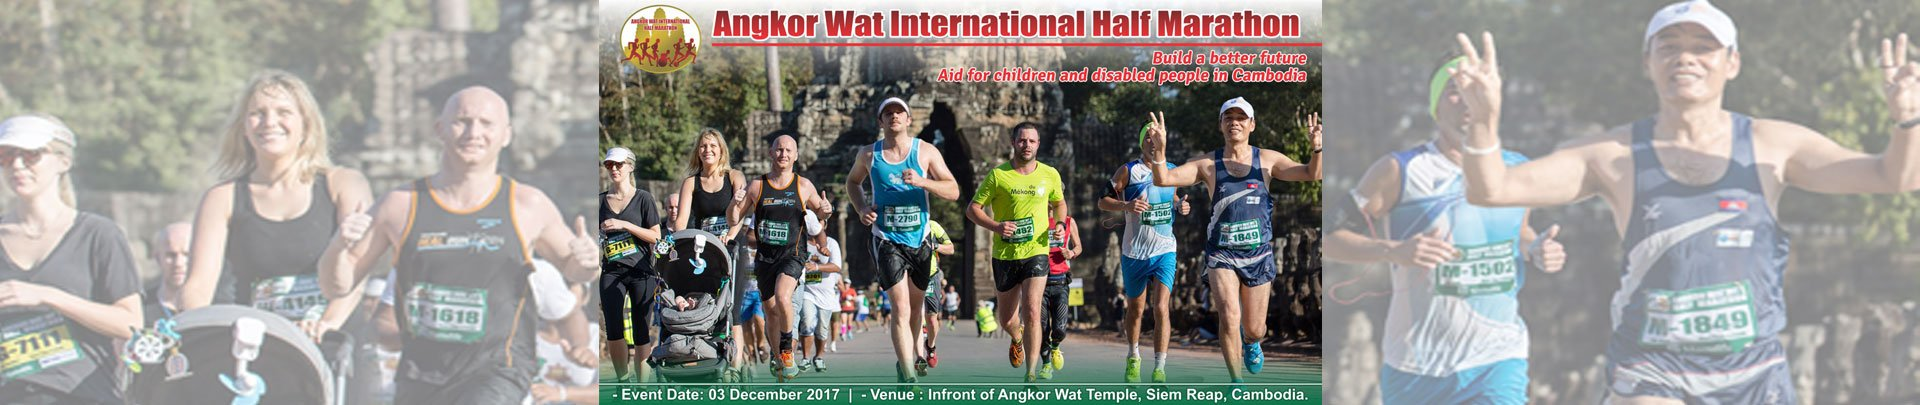 The 22nd Angkor Wat International Half Marathon on Sunday 03 December 2017